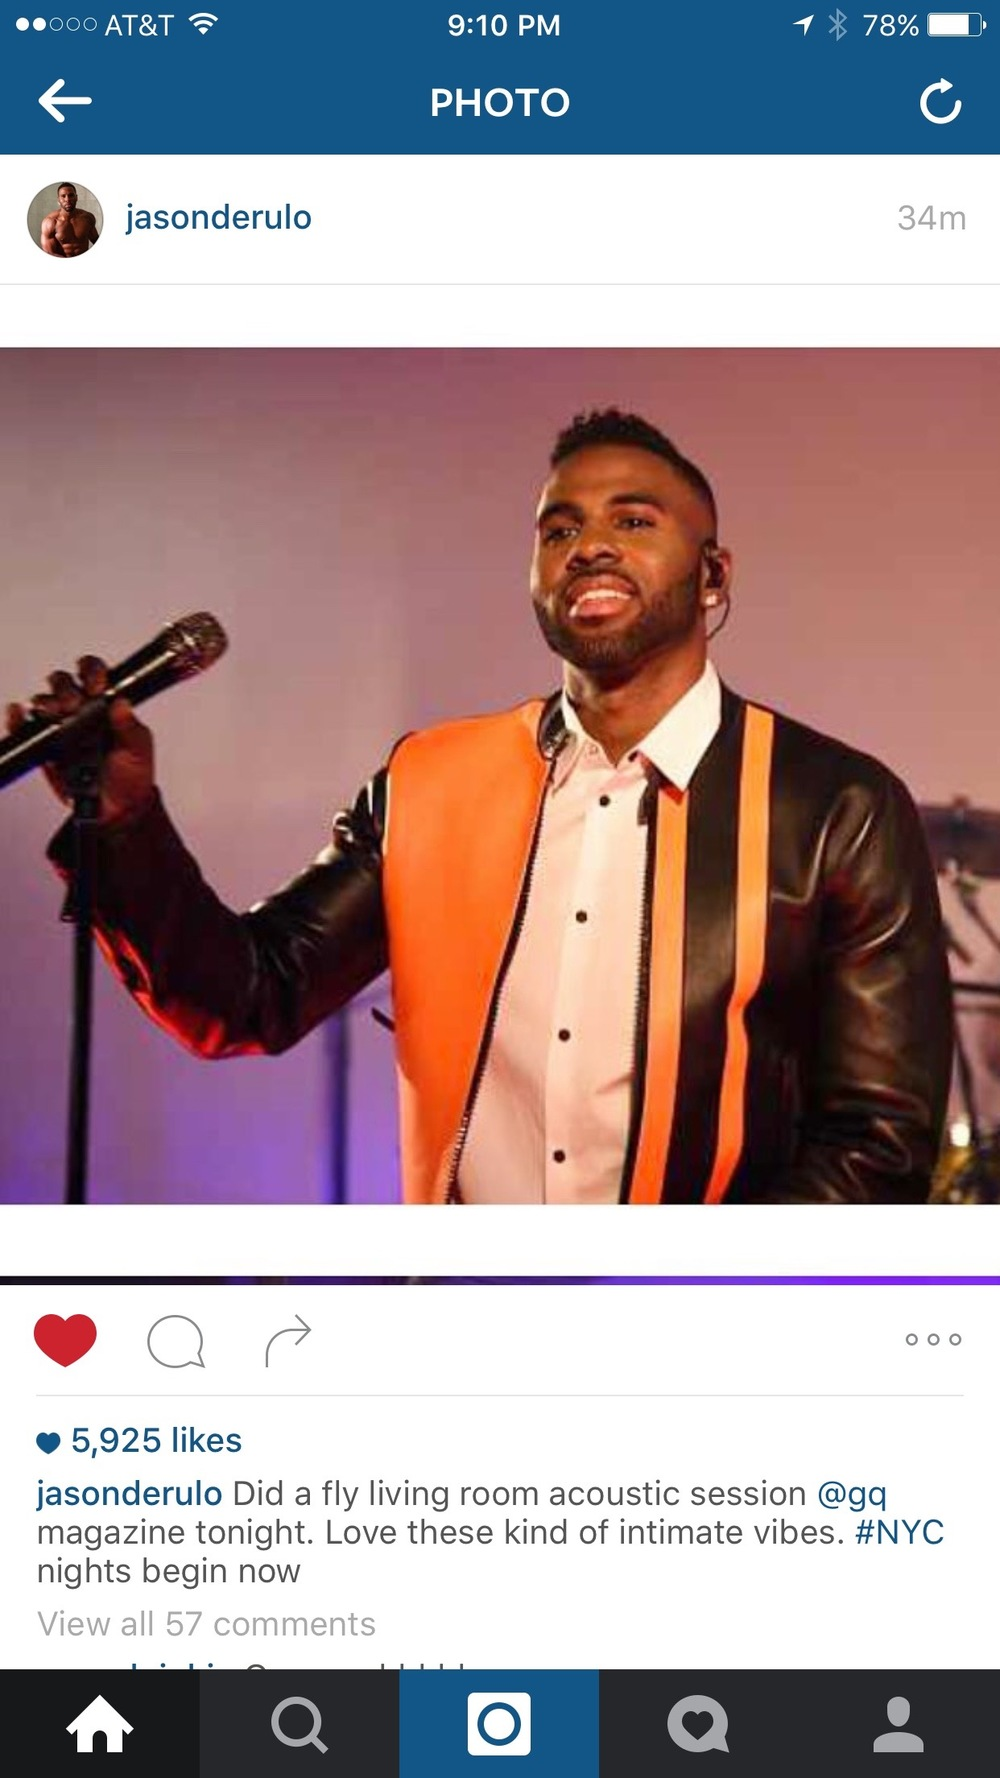 warner bros records jason derulo gq give back concert insta.jpg